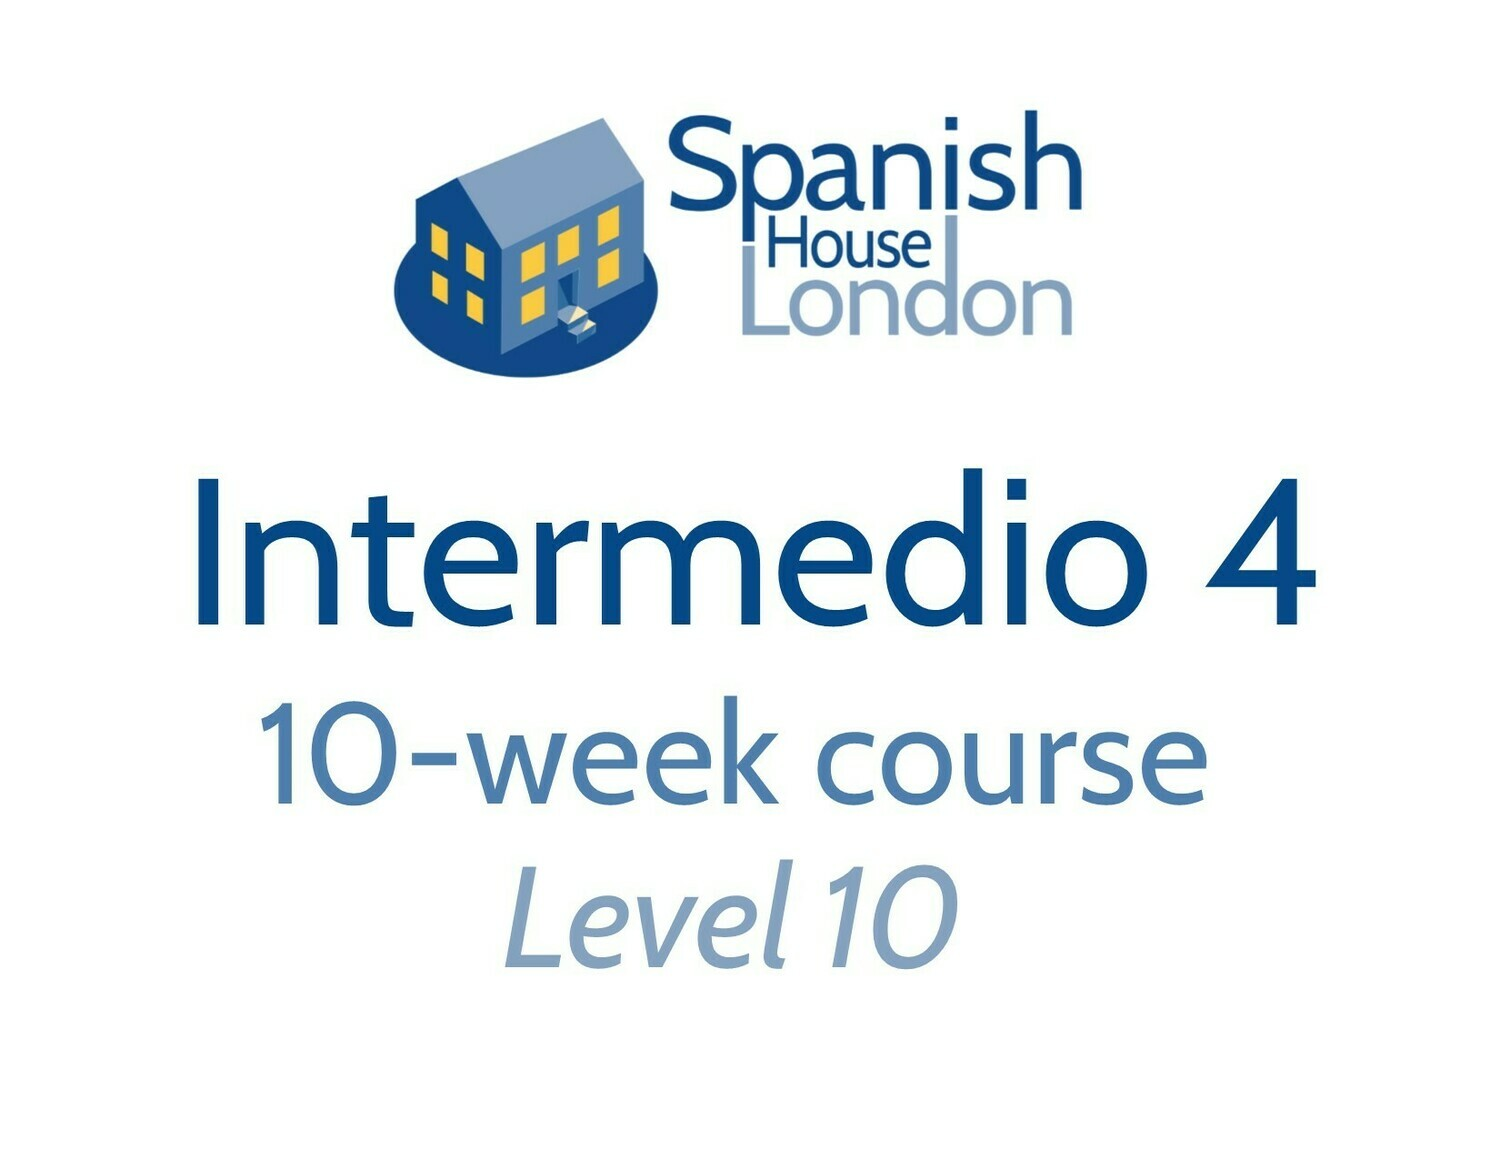 Intermedio 4 Course starting on 24th March at 6pm in Euston